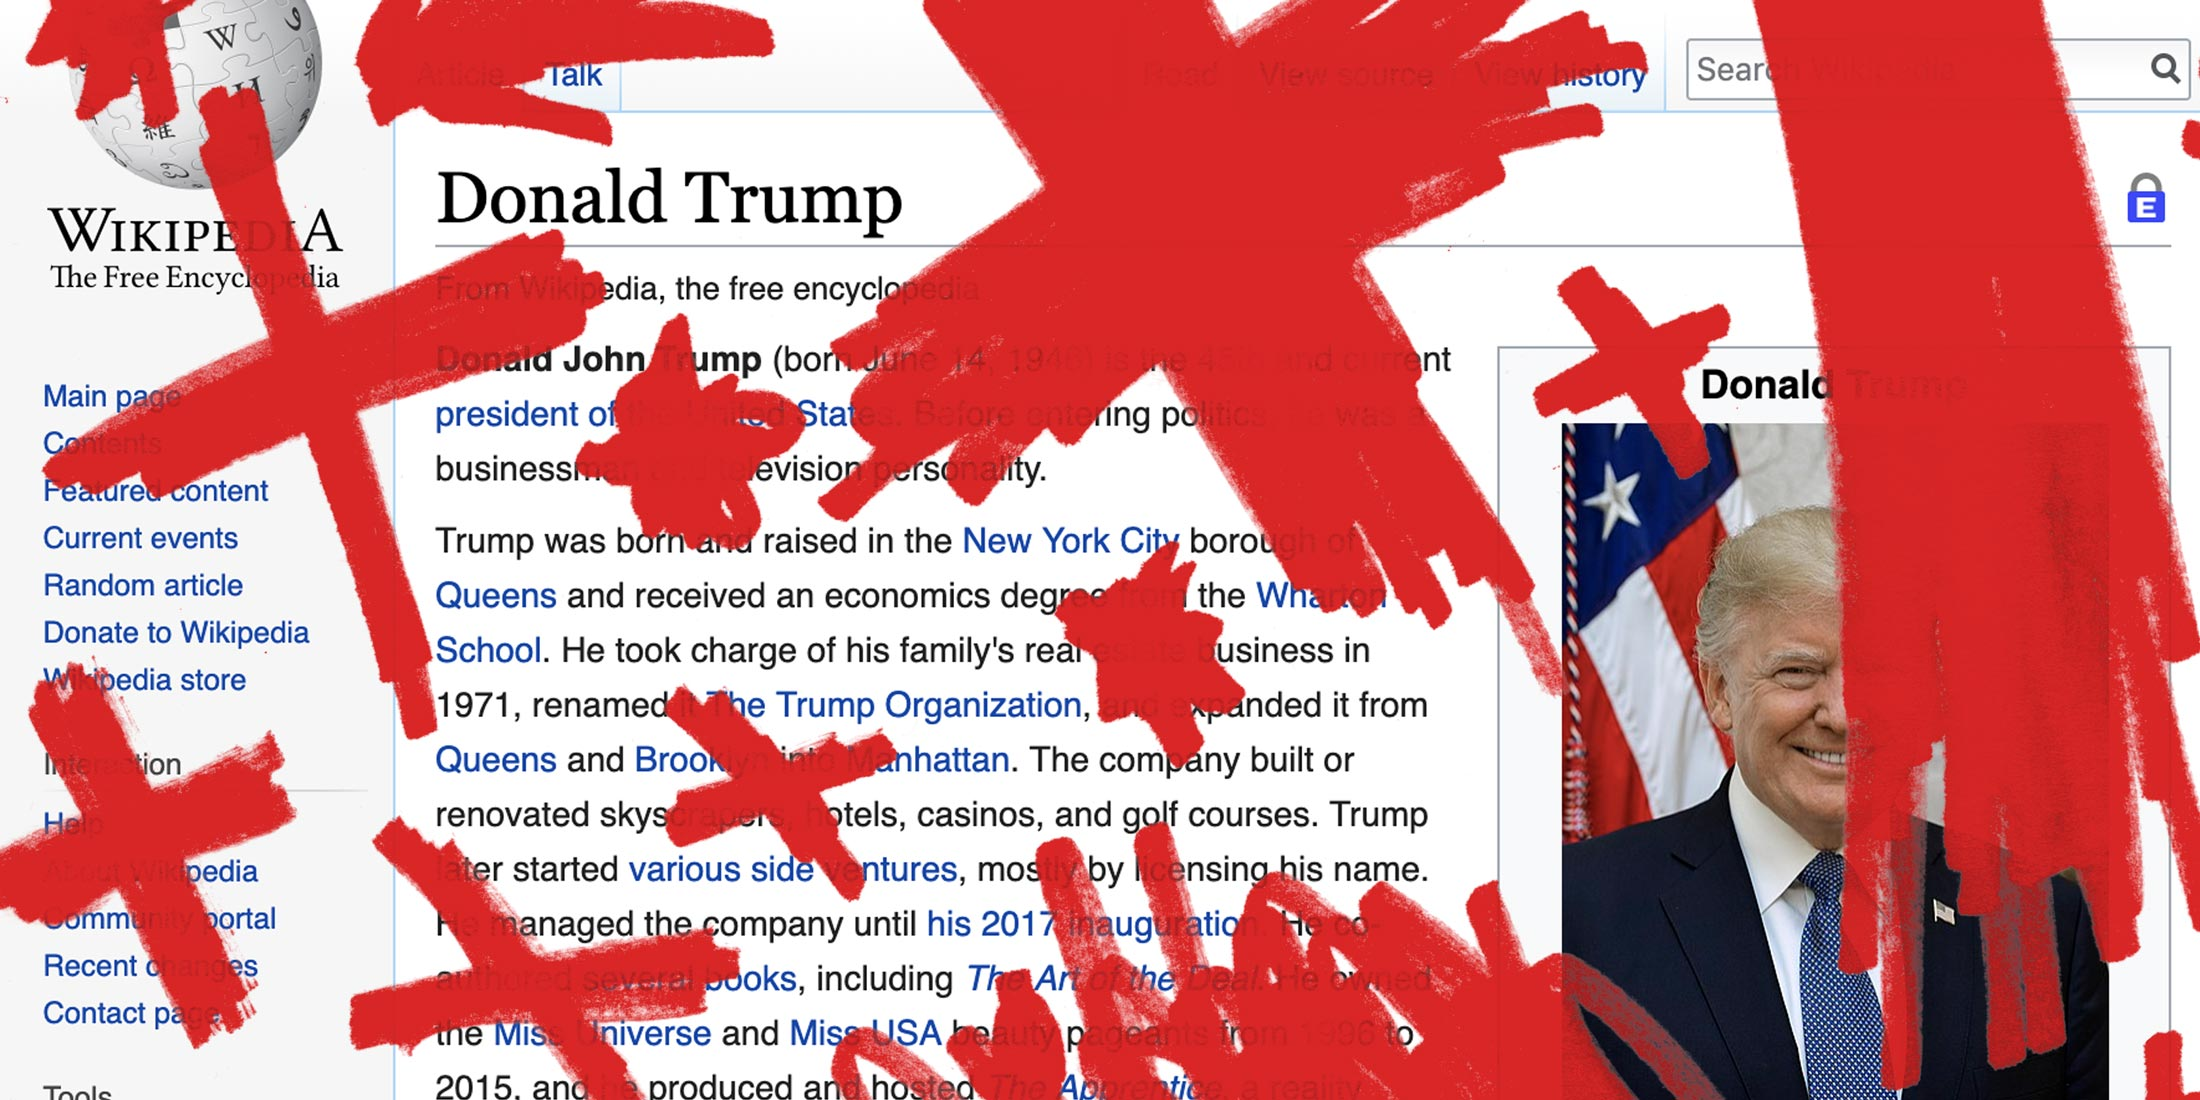 Donald Trump's Wikipedia page with red X's on it.